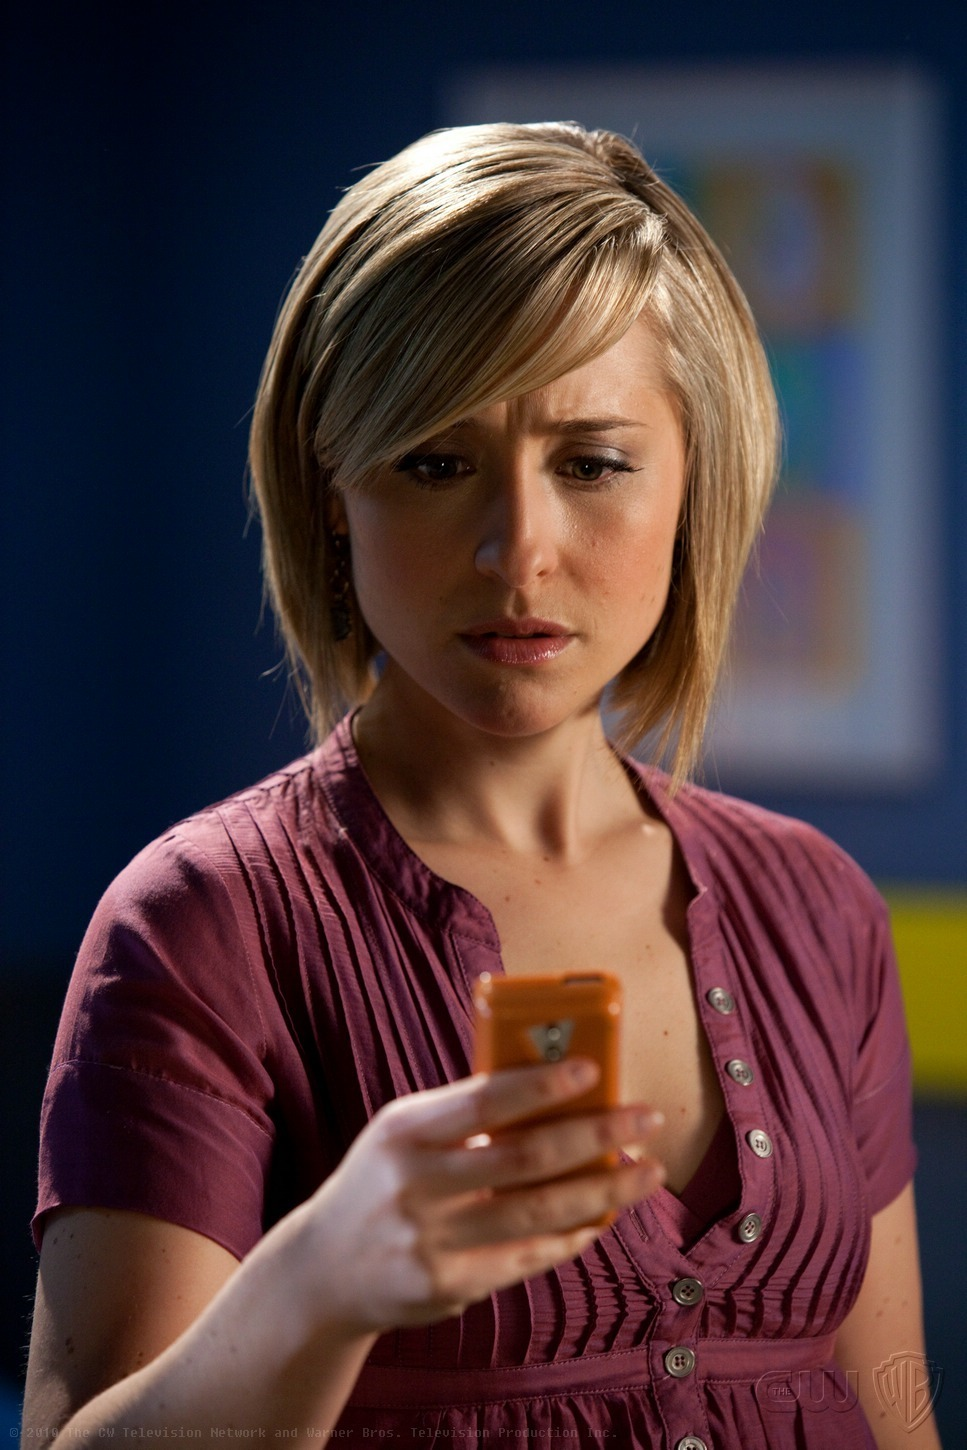 2019 Allison Mack nudes (43 foto and video), Ass, Leaked, Selfie, lingerie 2019